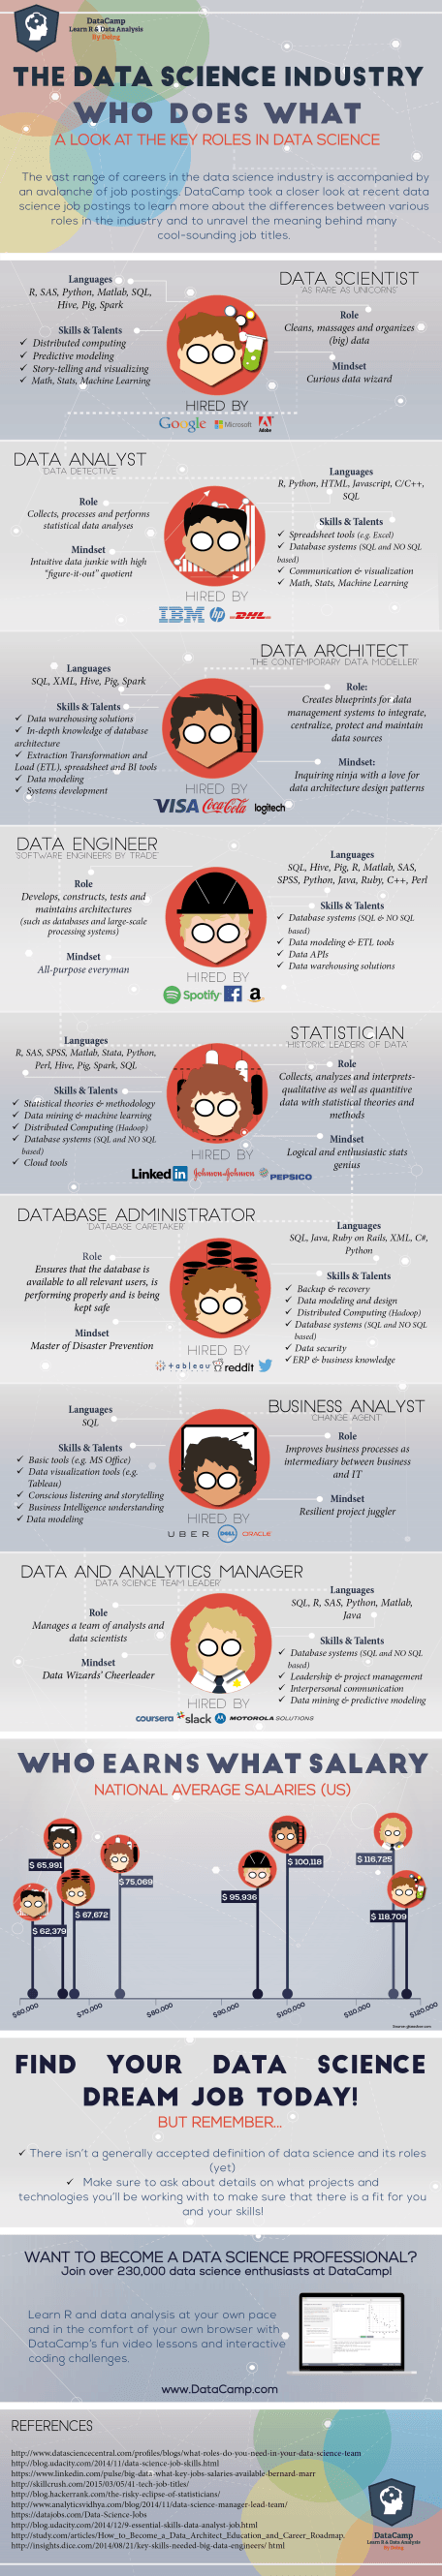 The Data Science Industry: Who Does What (Infographic)